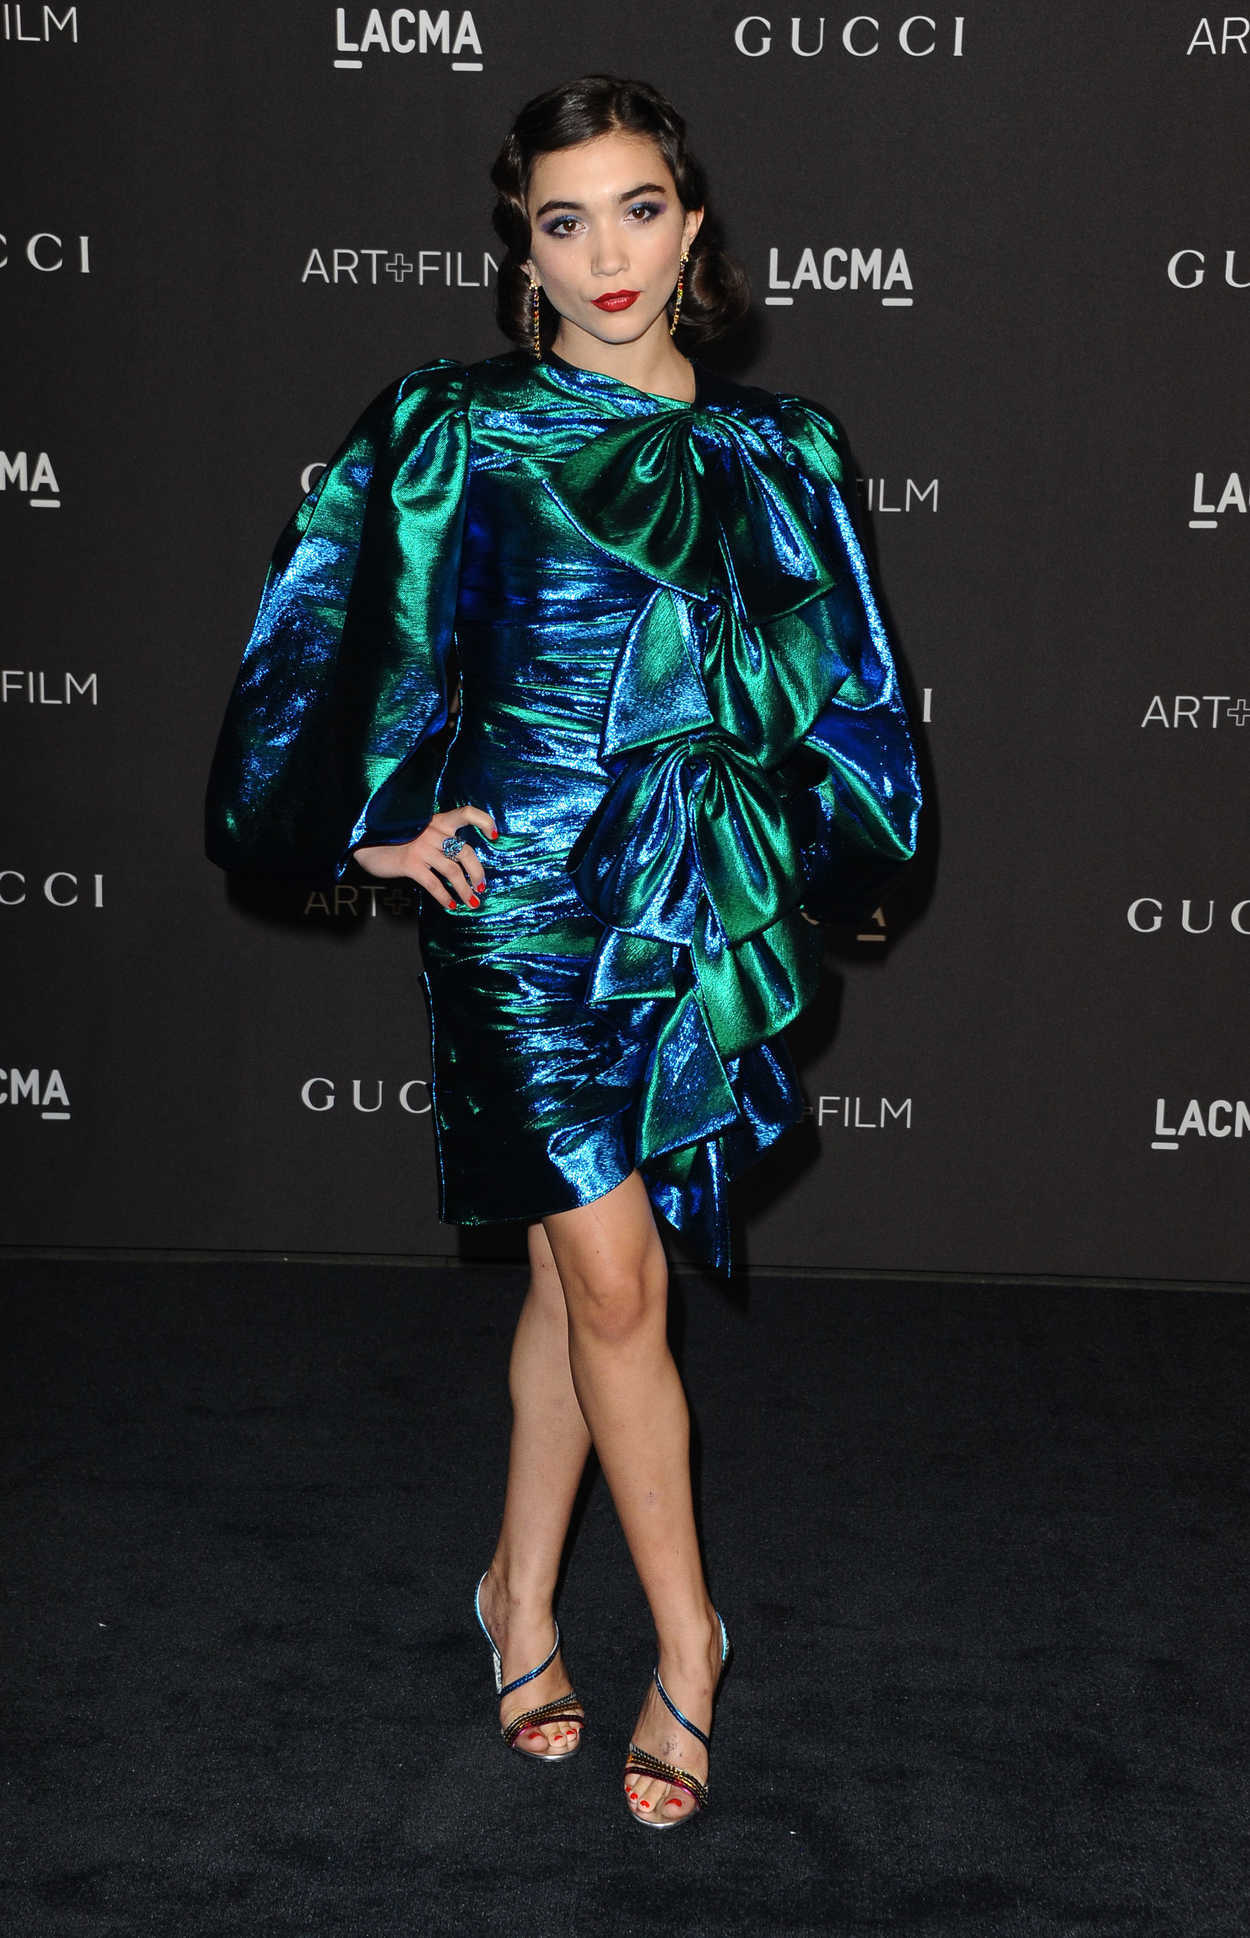 Rowan Blanchard Attends 2018 LACMA Art And Film Gala In Los Angeles 11032018